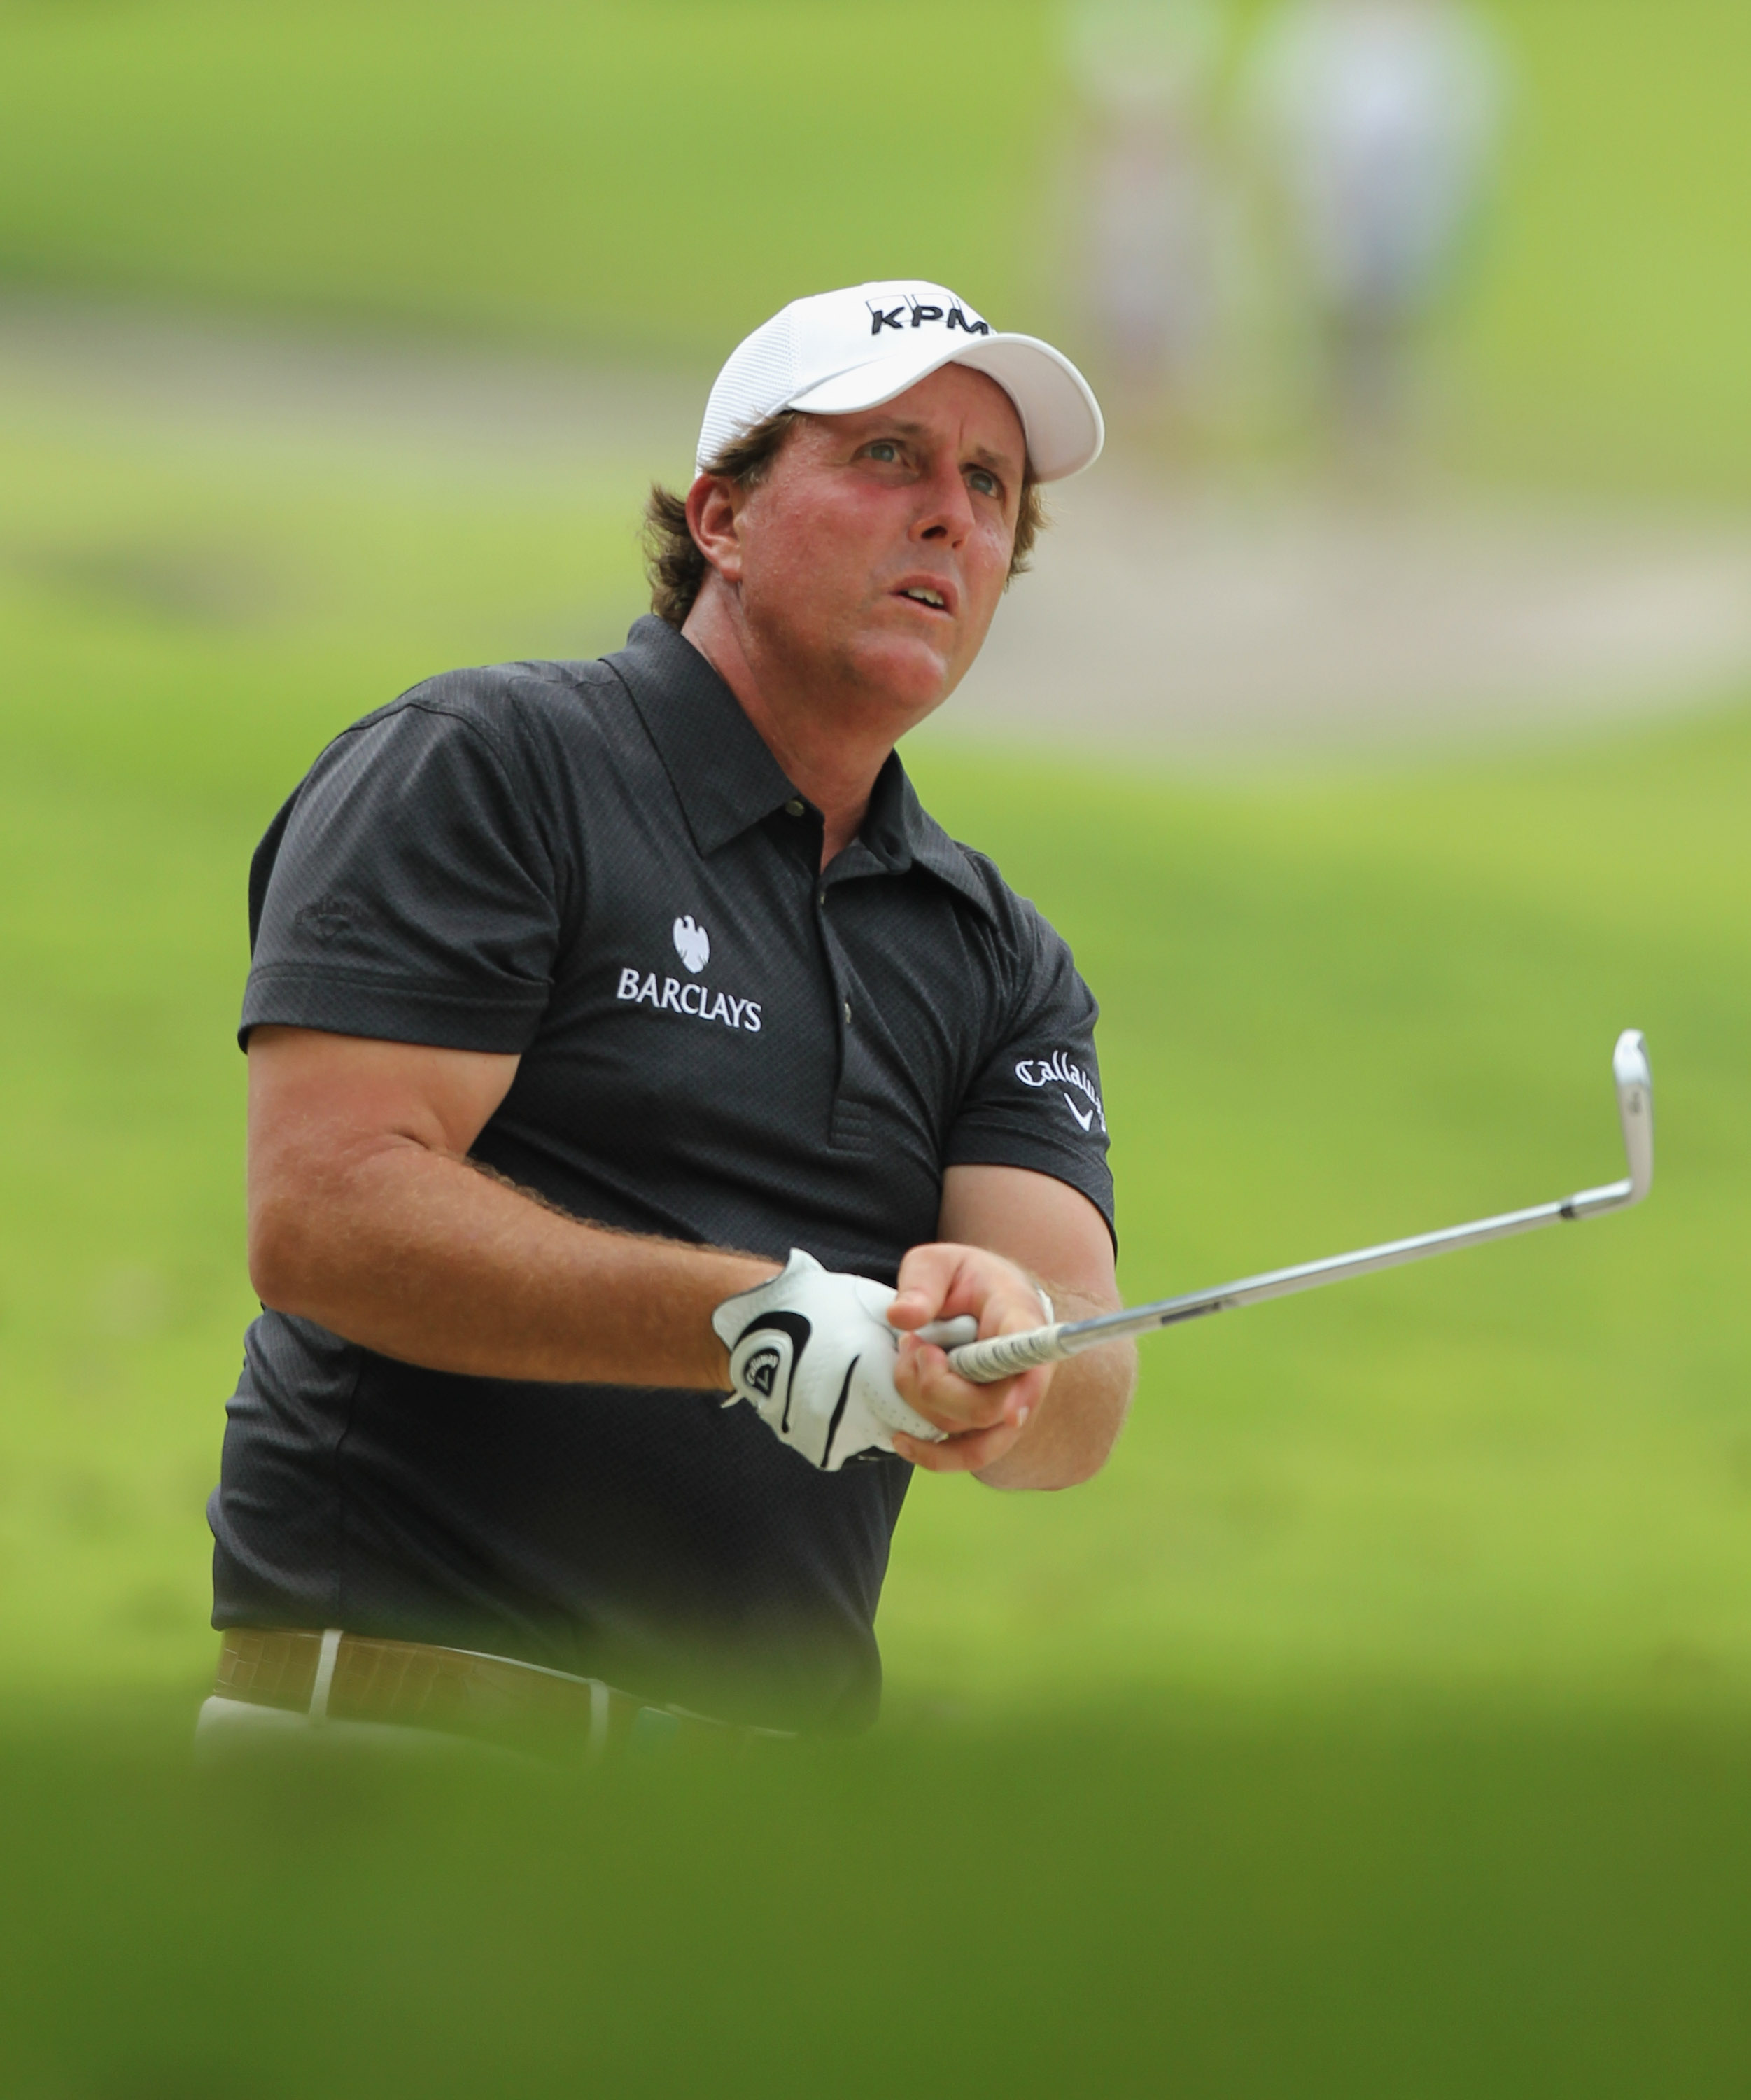 SINGAPORE - NOVEMBER 13: Phil Mickelson of USA watches his 2nd shot on the 18th hole during the Third Round of the Barclays Singapore Open held at the Sentosa Golf Club on November 13, 2010 in Singapore, Singapore.  (Photo by Stanley Chou/Getty Images)